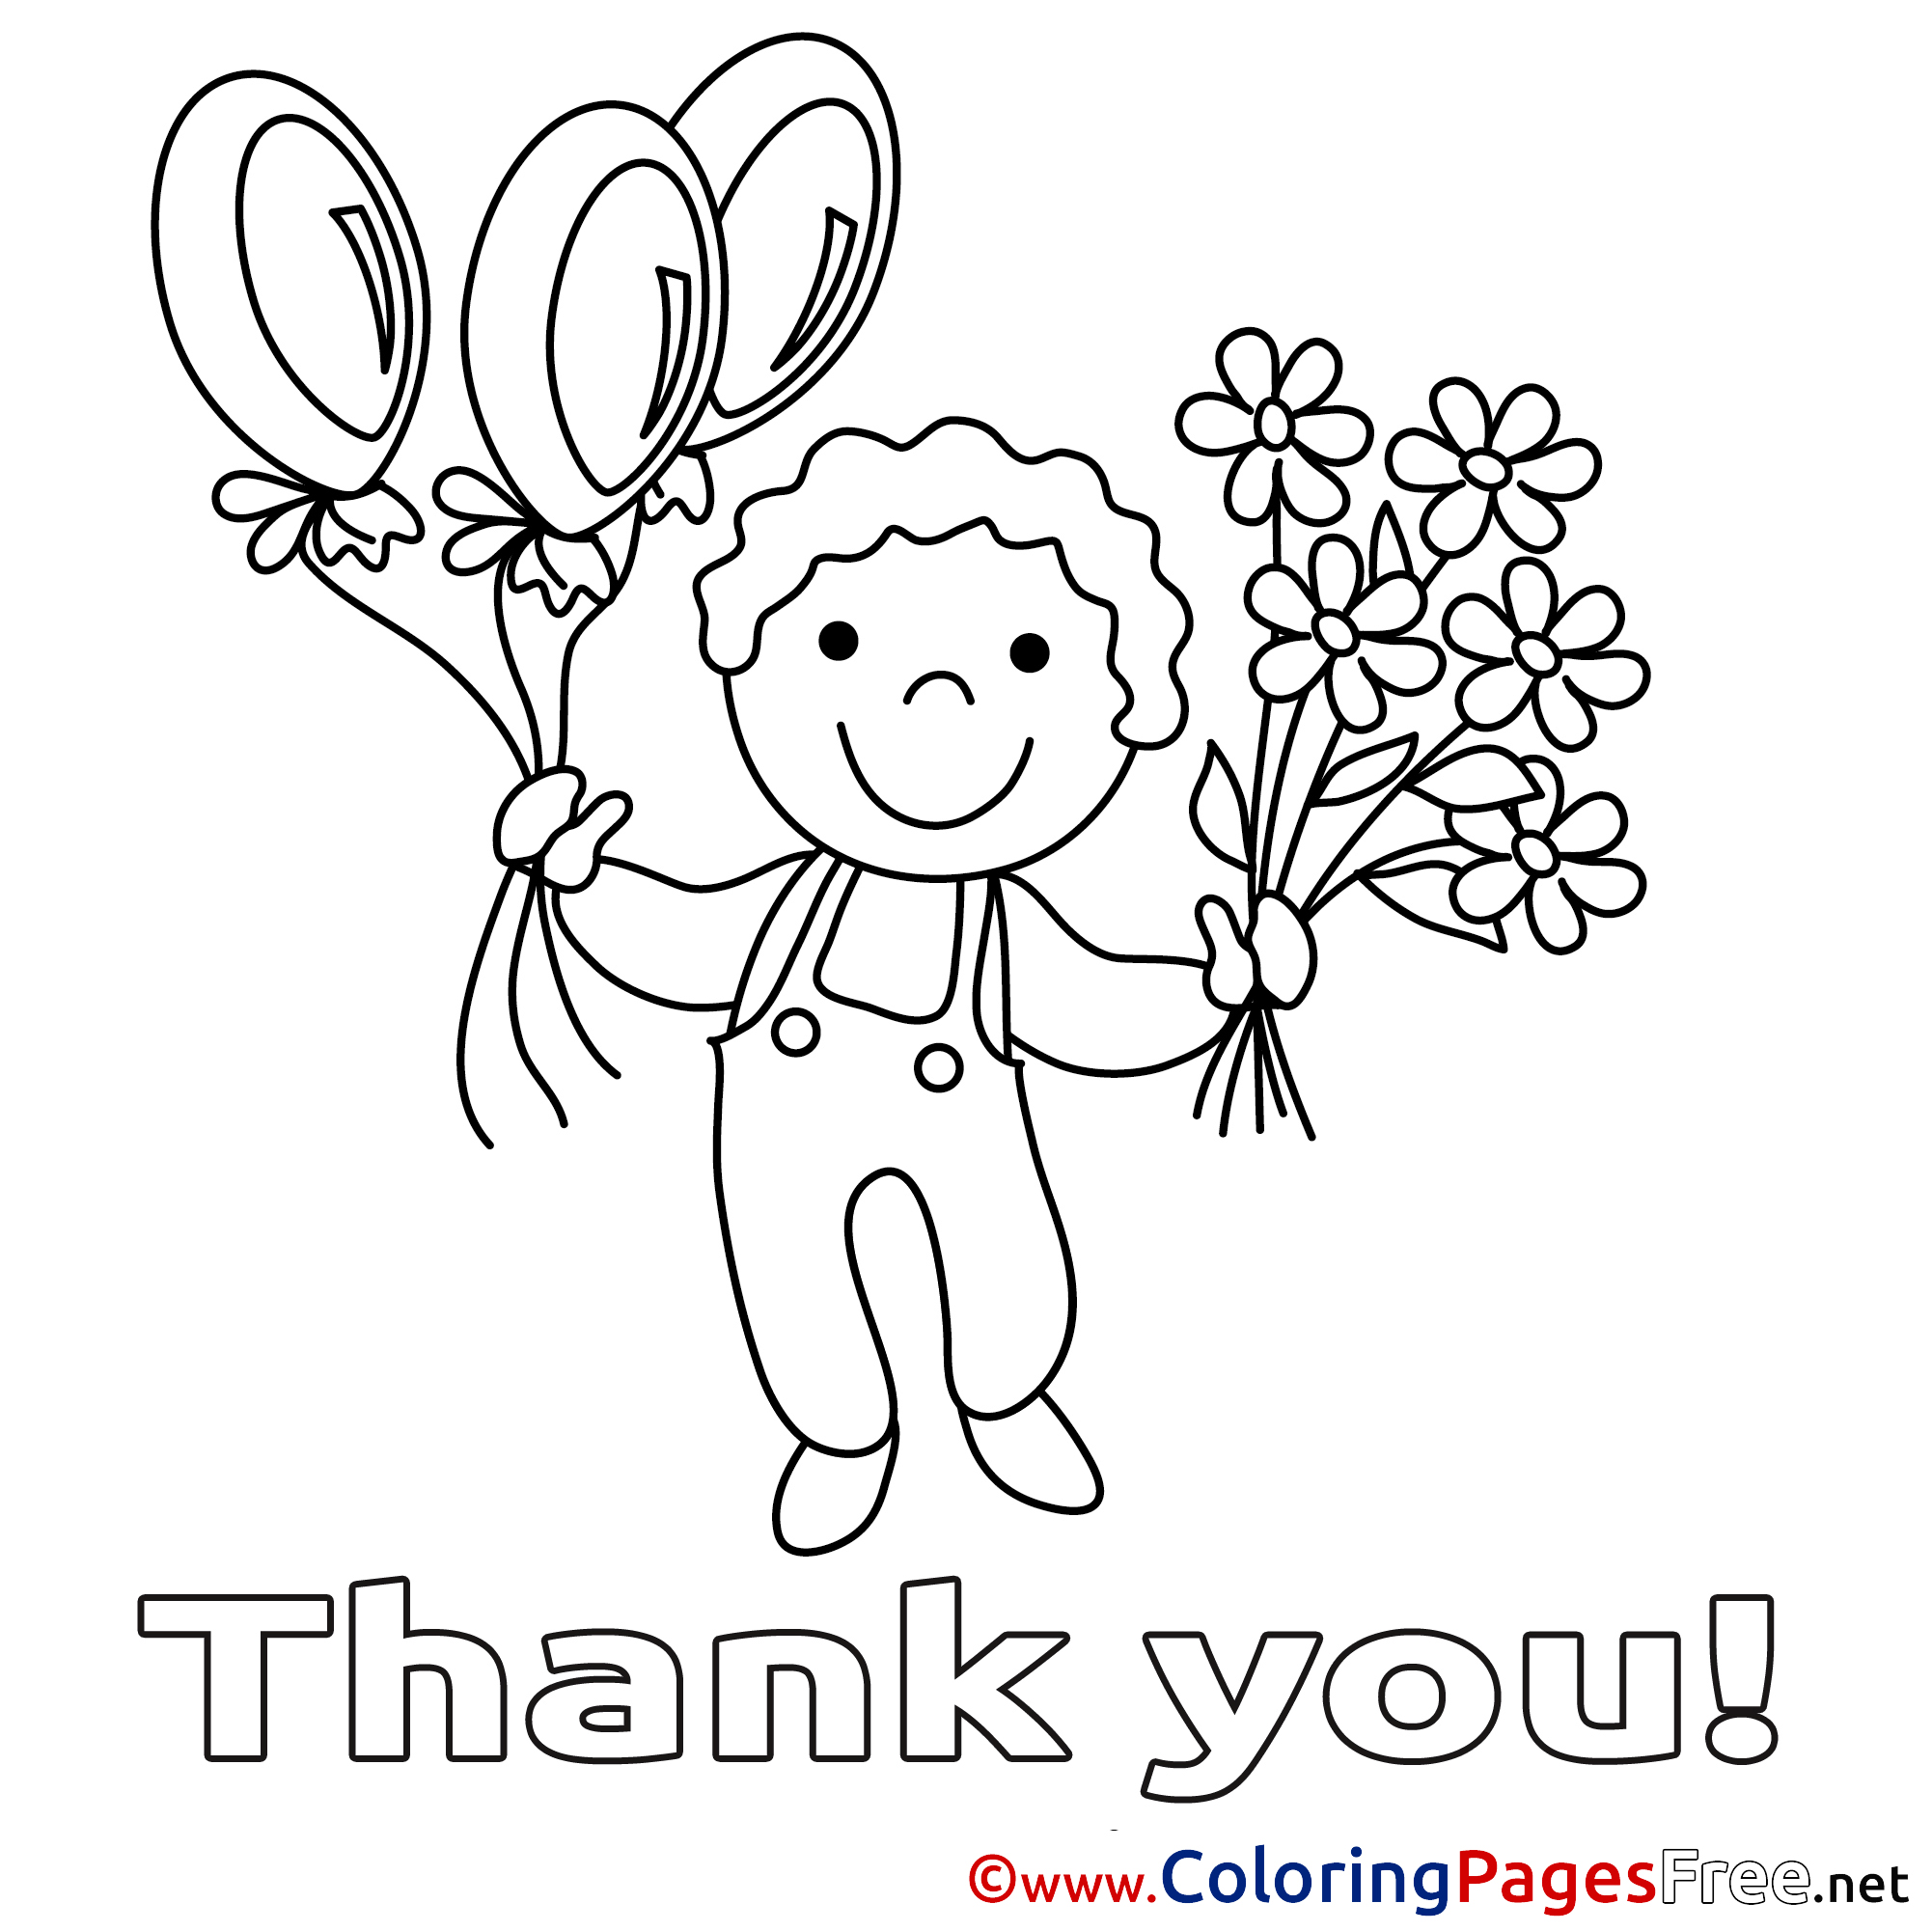 2002x2001 Thank You Coloring Pages Paginone Biz Within